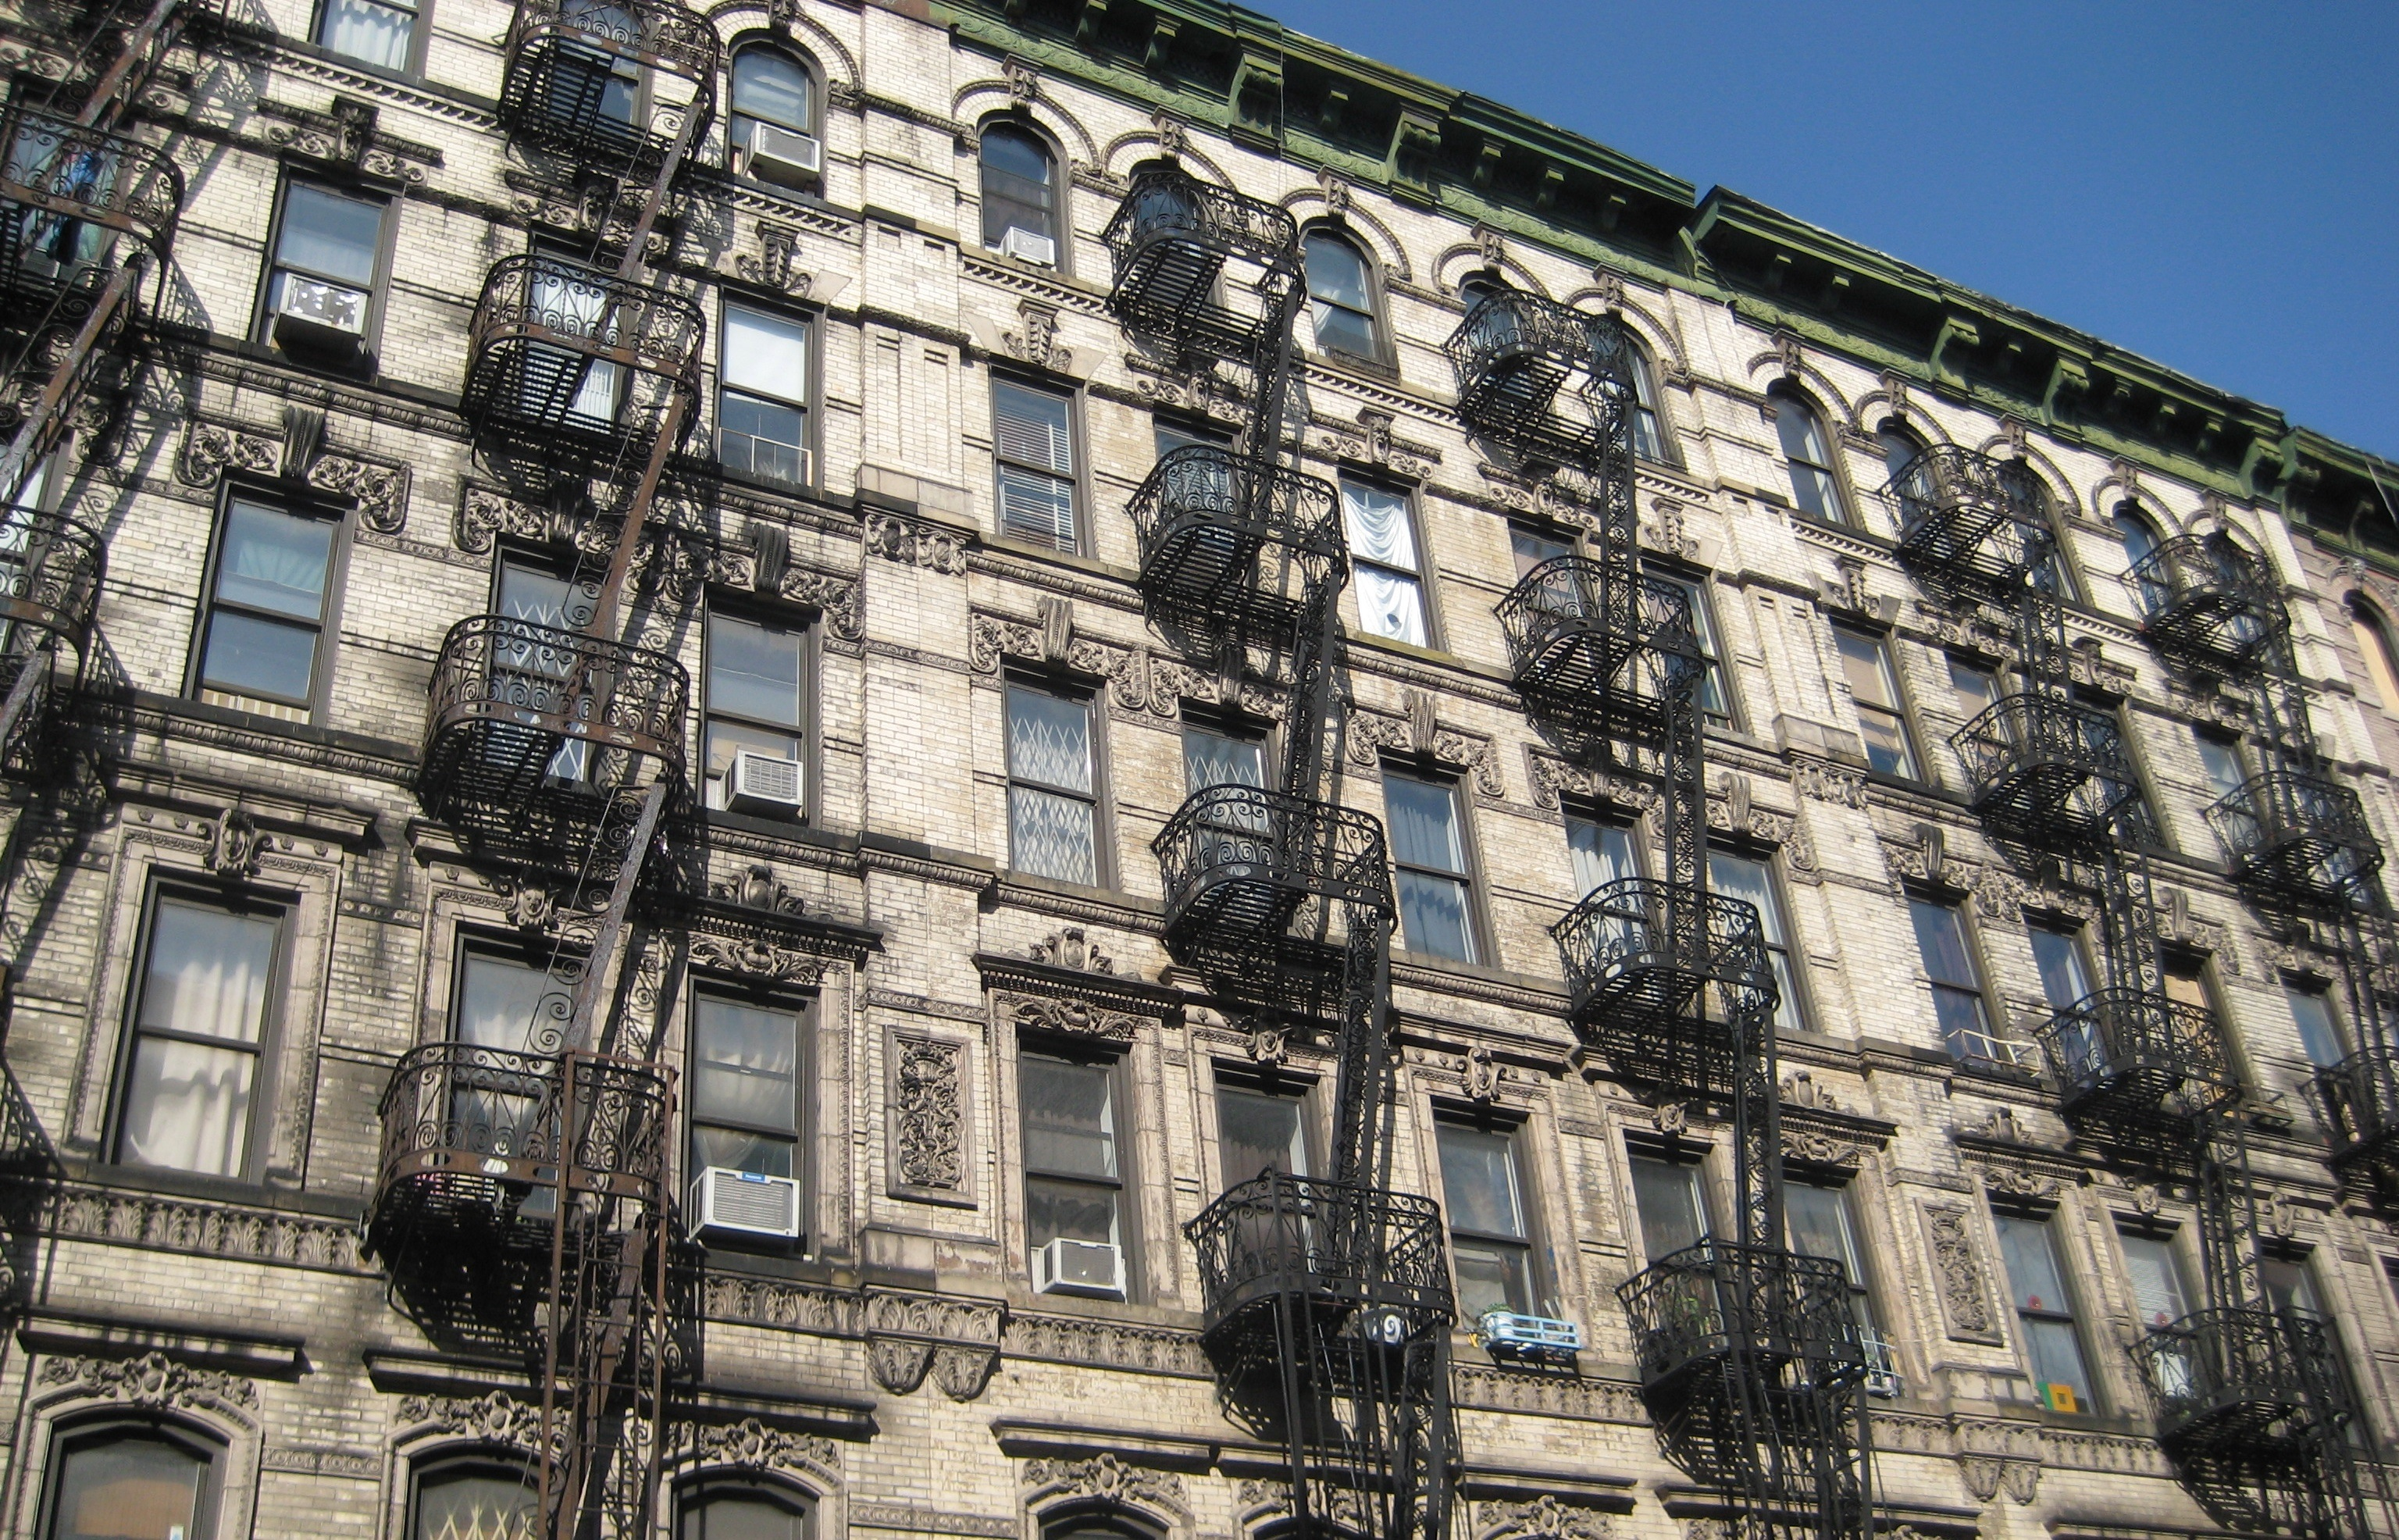 Ordinary fire escapes or romantic balconies ephemeral for New york balcony